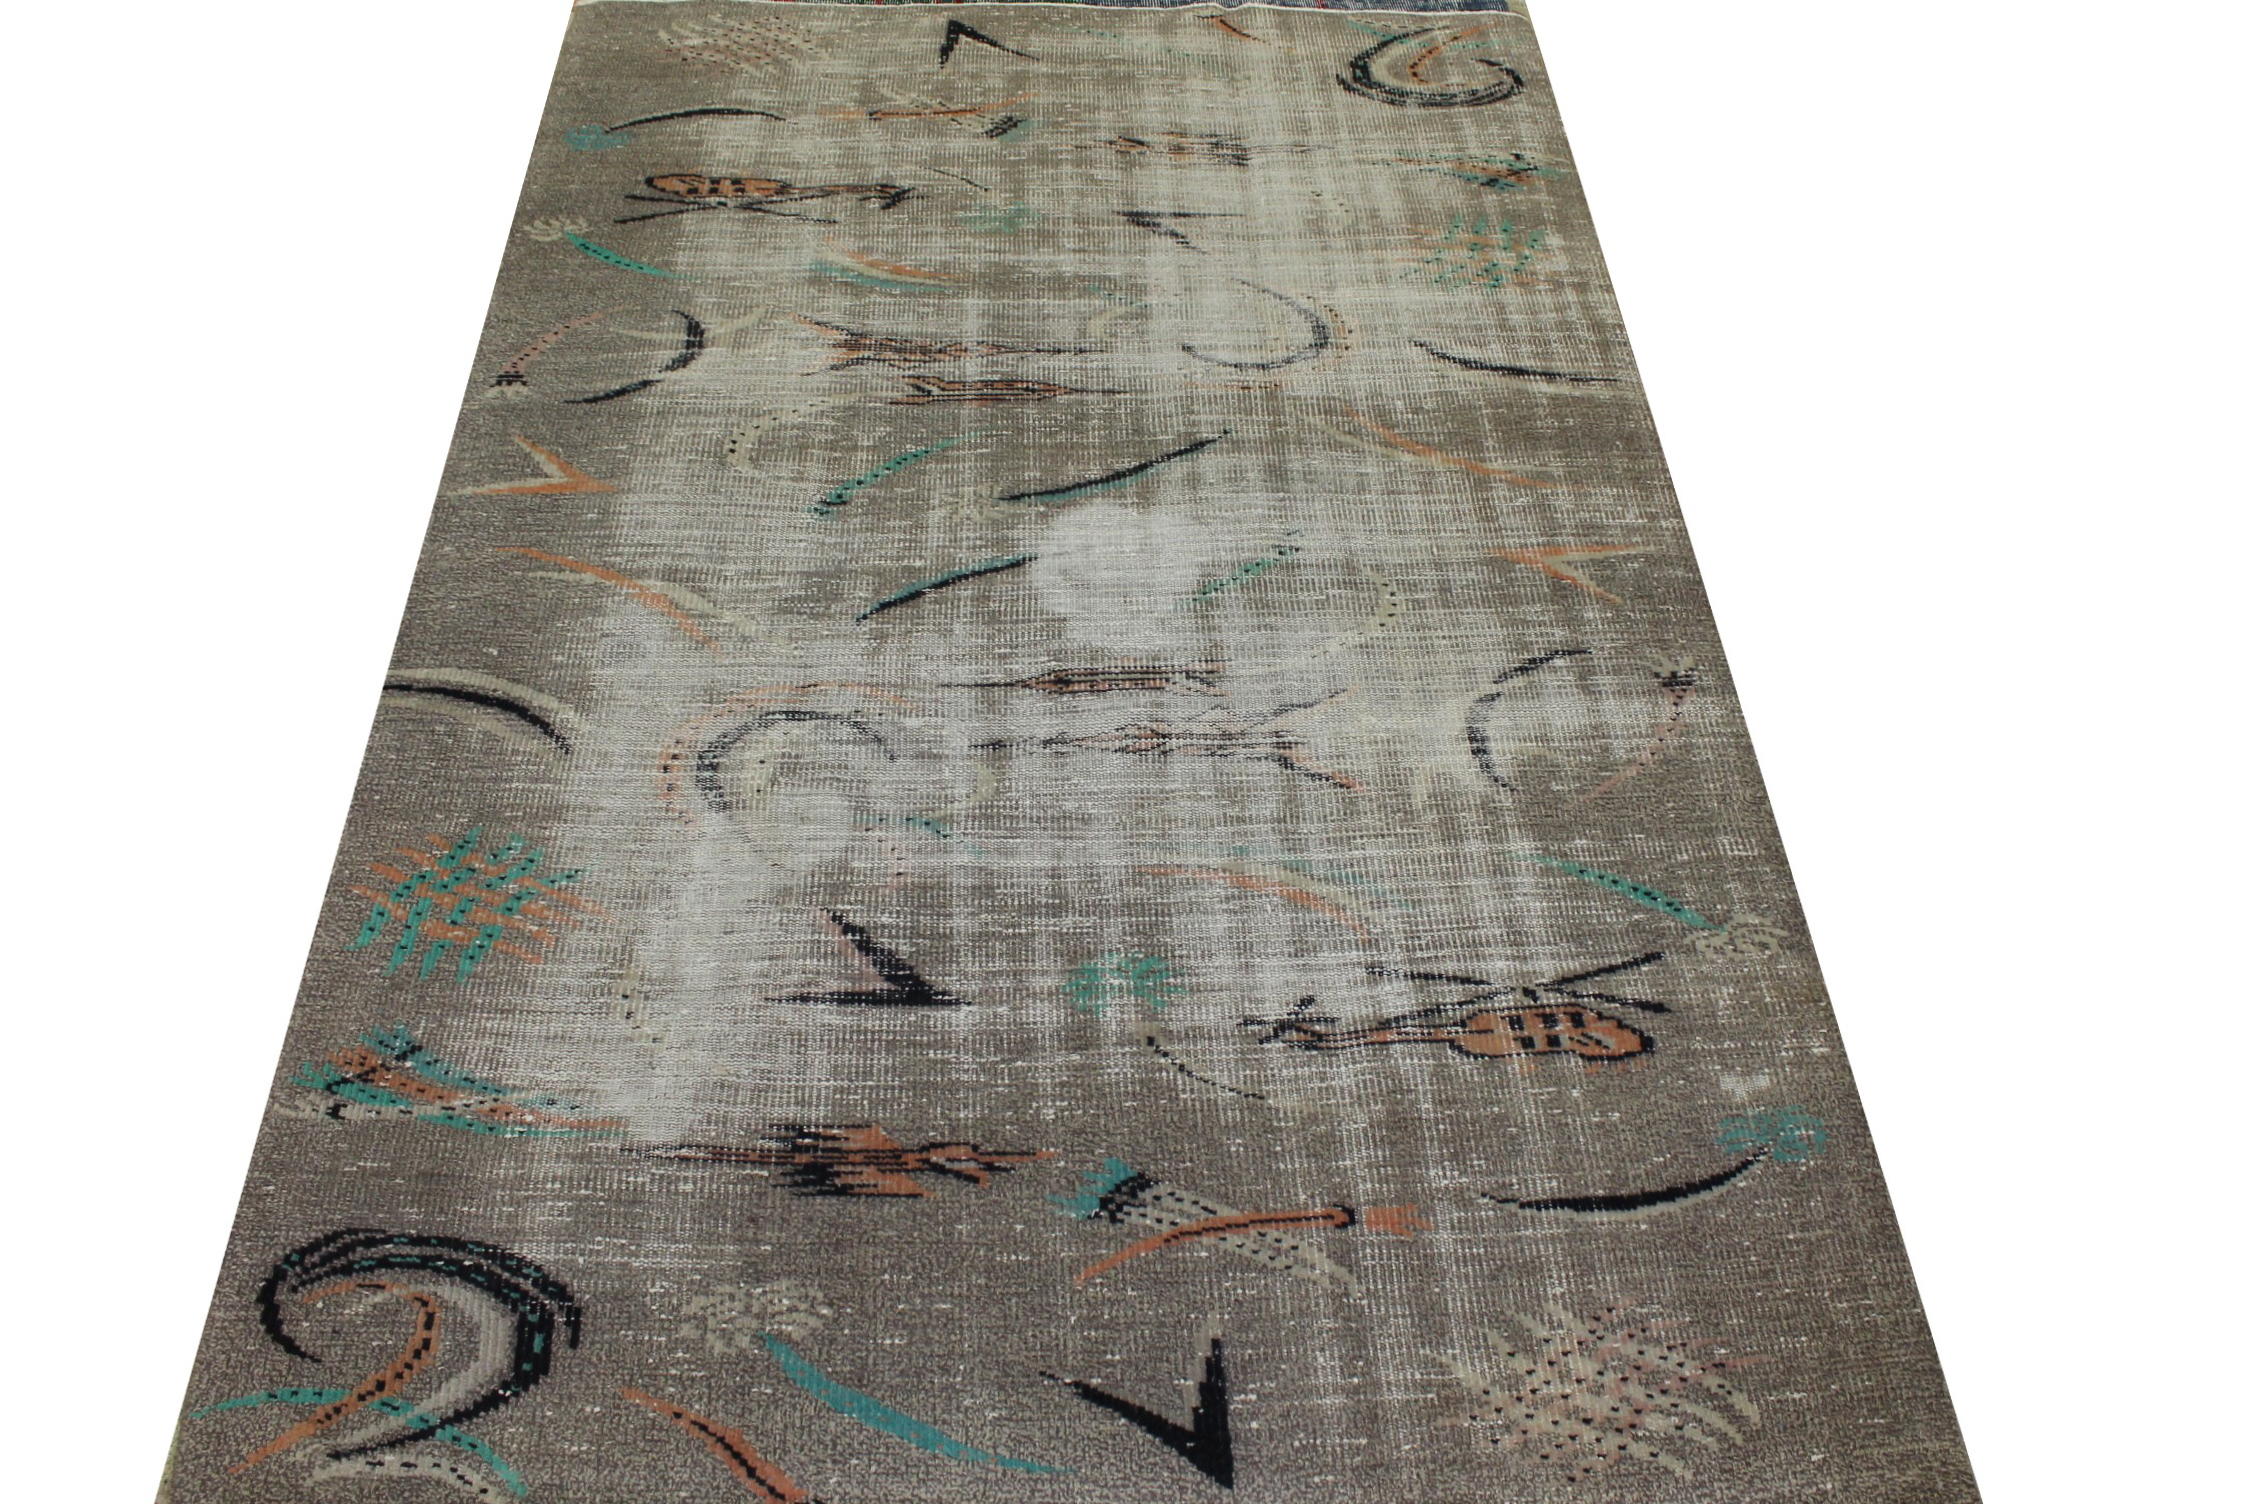 5x7/8 Contemporary Hand Knotted Wool Area Rug - MR023456